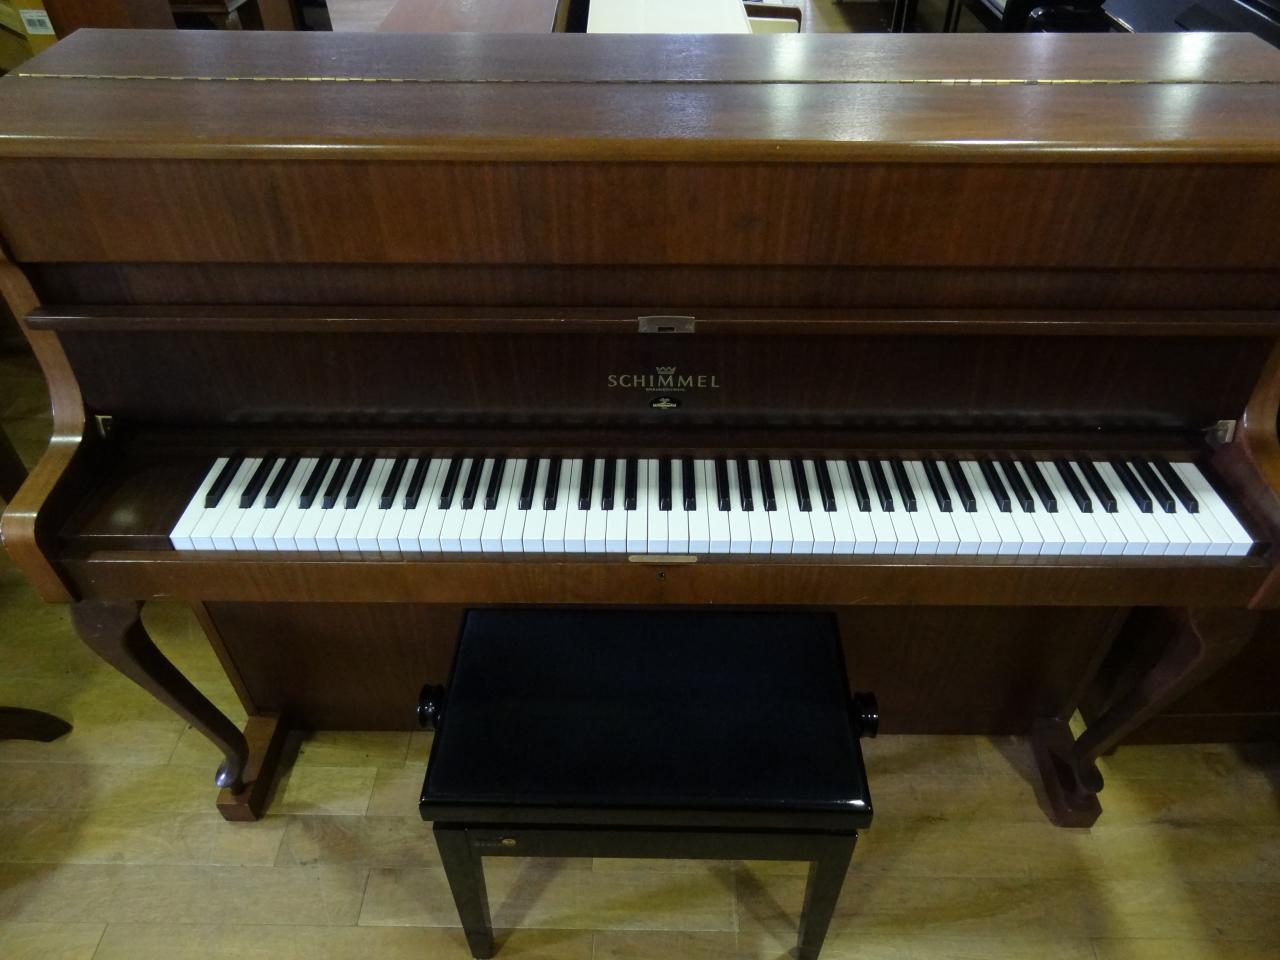 SCHIMMEL Chippendale 112 noyer satiné